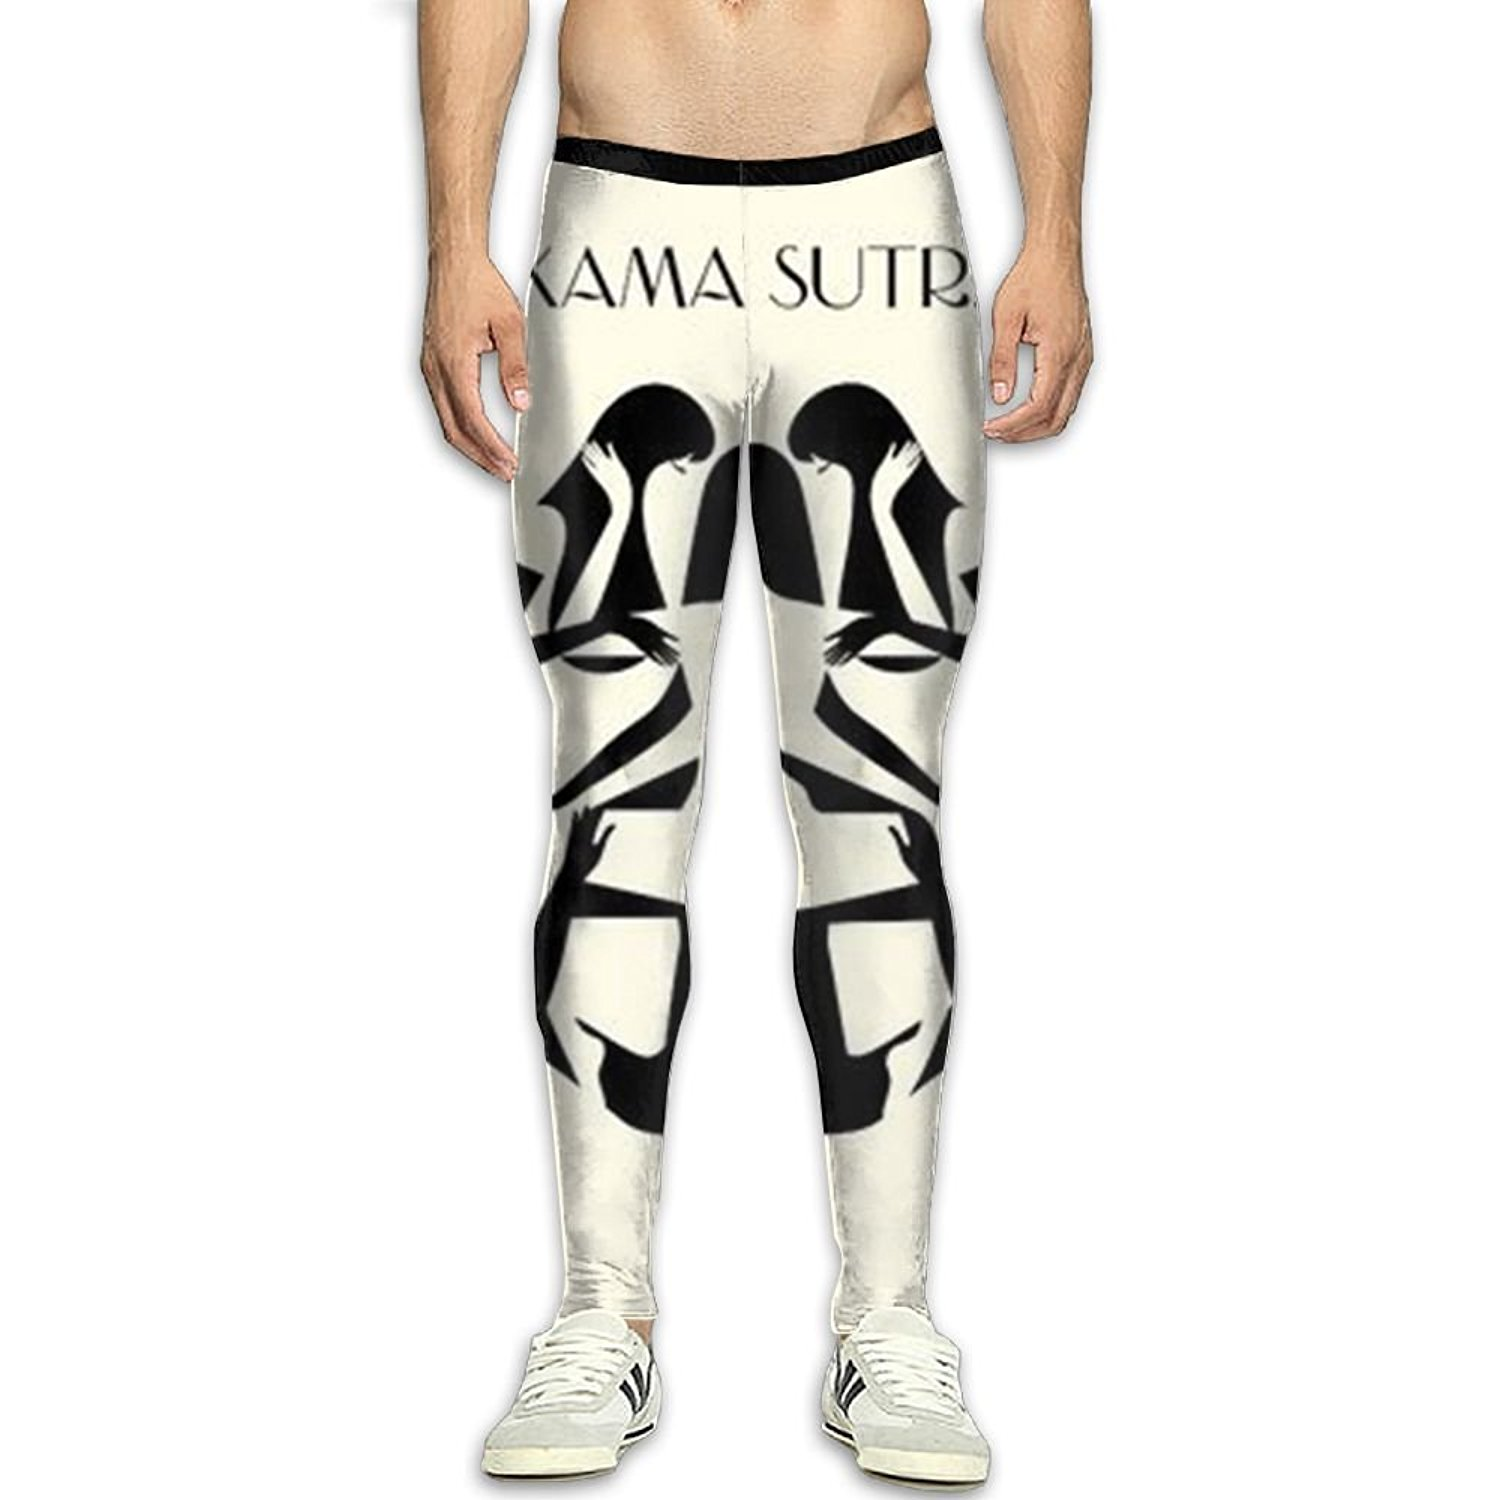 f03c5d8151be1 Get Quotations · Libra Kamasutra Skins Compression Pants/Running Tights Gym  Tights For Men Women's Side Pocket